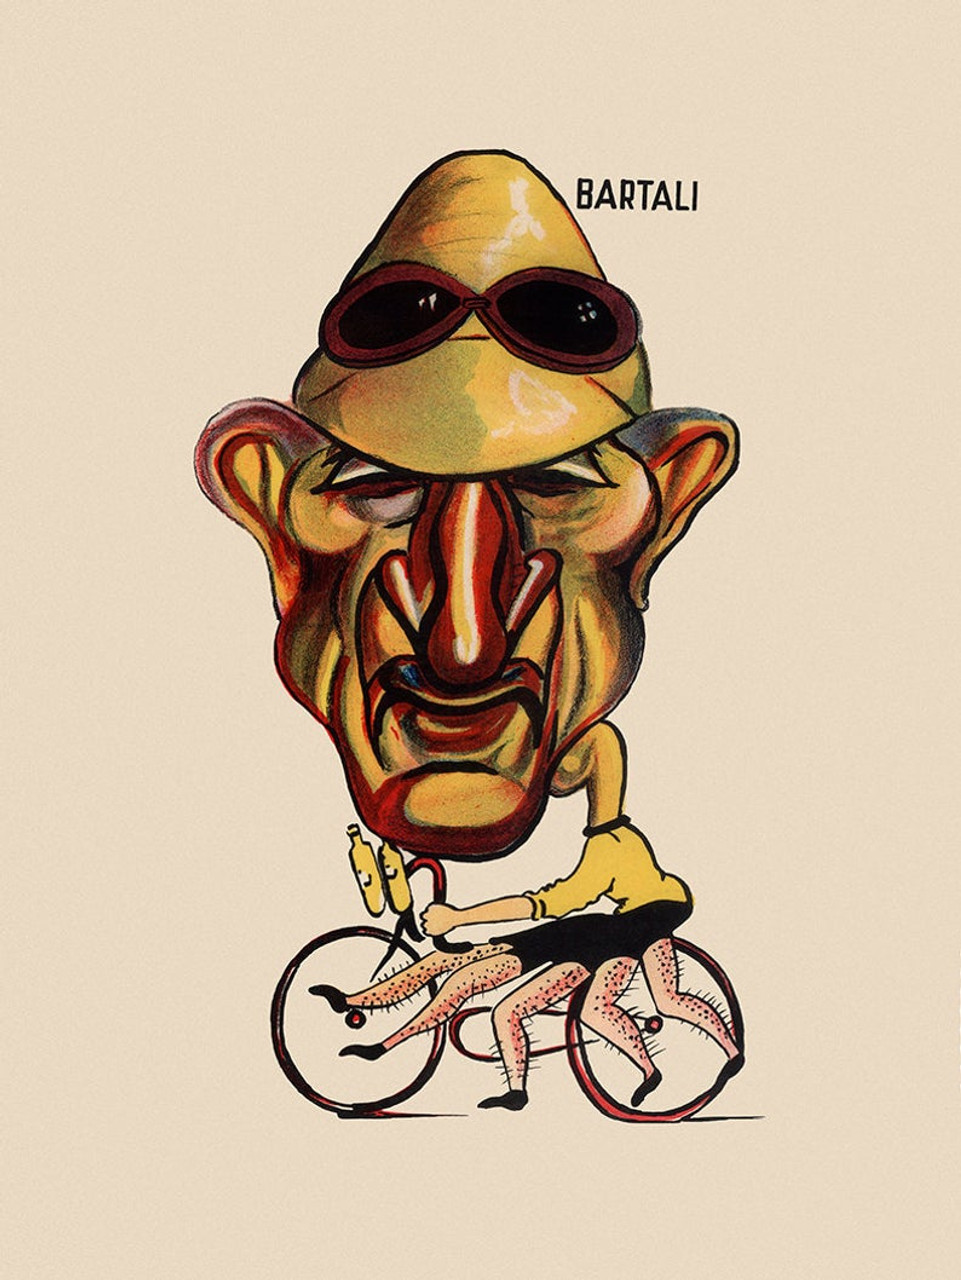 Gino Bartali Caricature Poster from the 1949 Giro d'italia